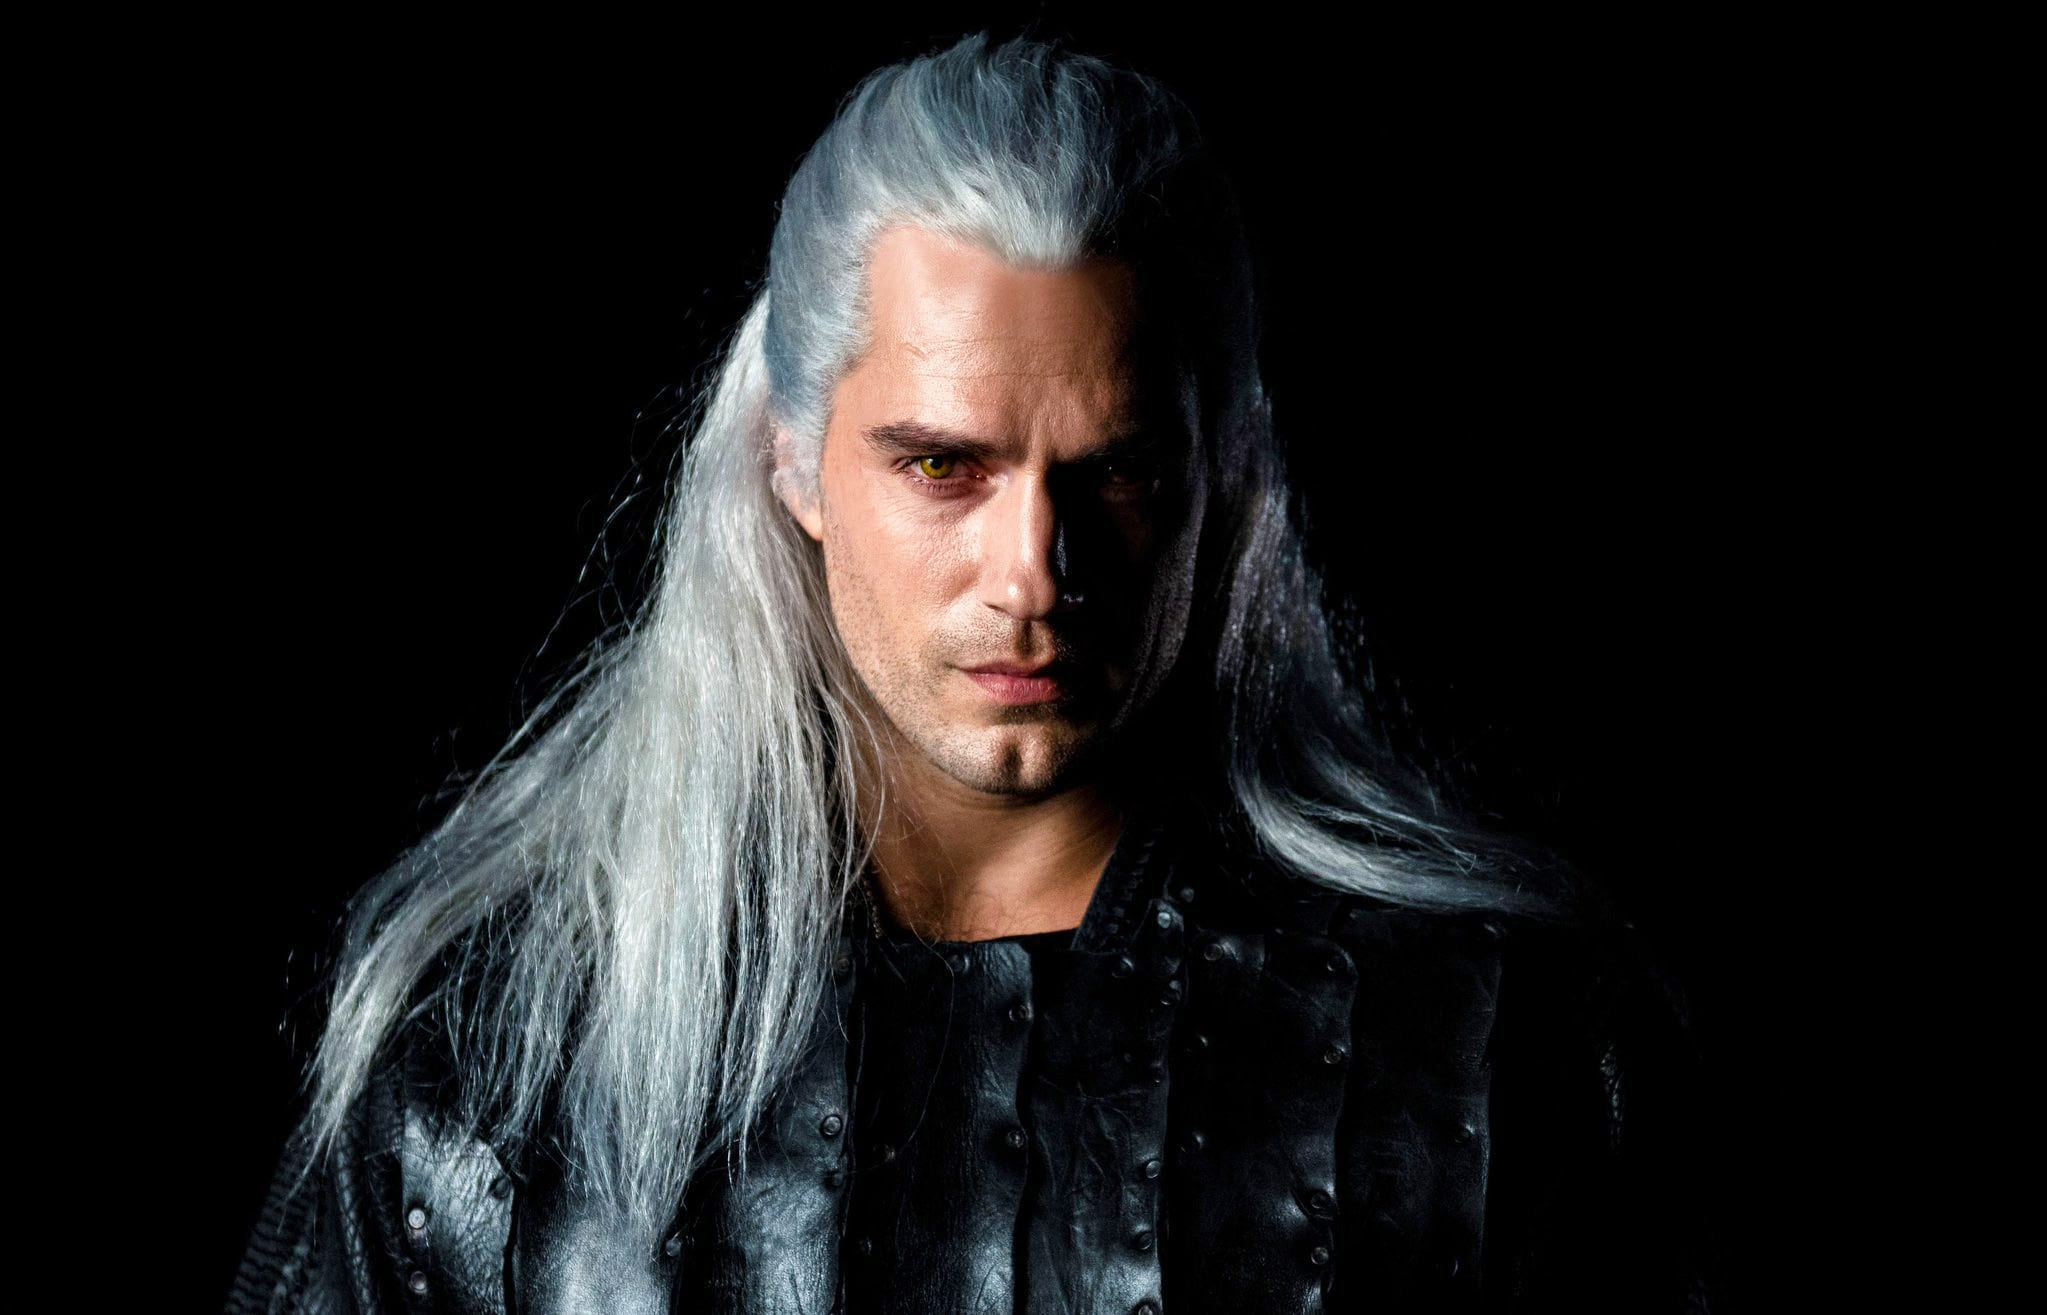 Witcher showrunner confirms they won't adapt the games in the future